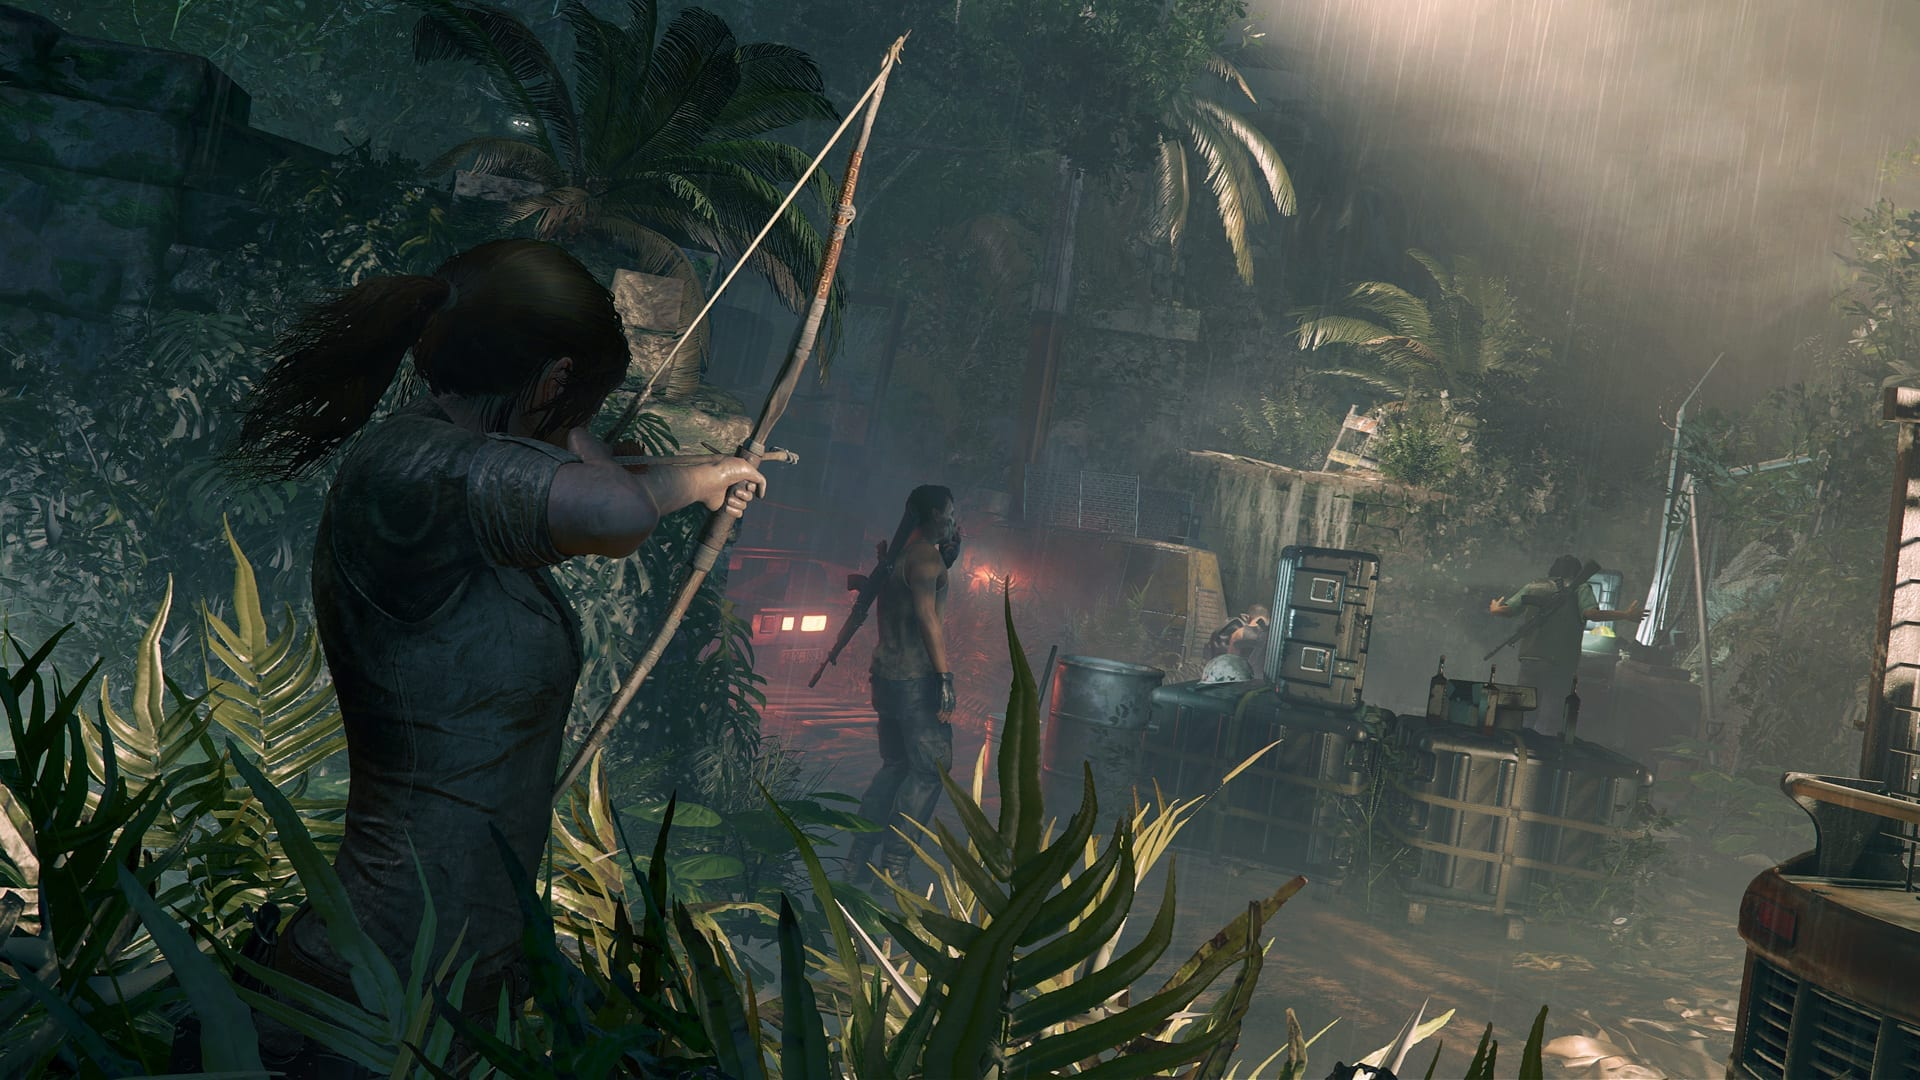 Leaked Shadow Of The Tomb Raider Images Show Young Lara Exploring